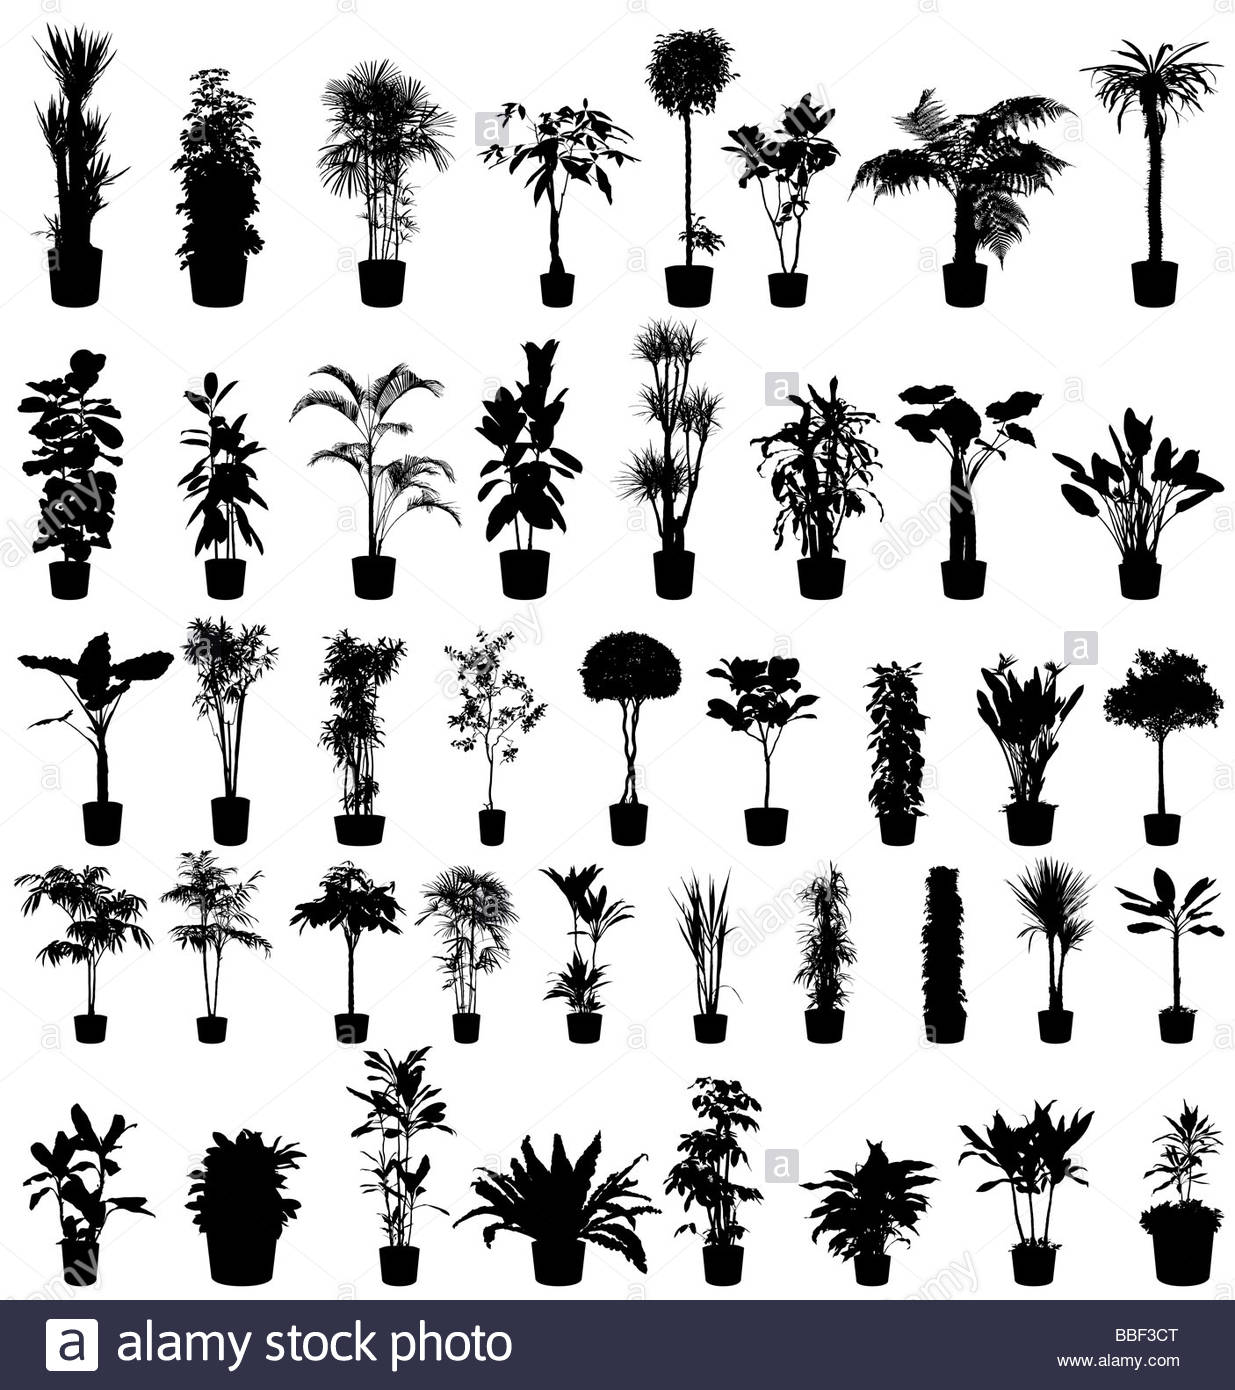 great trees and plants silhouettes collection - Stock Image